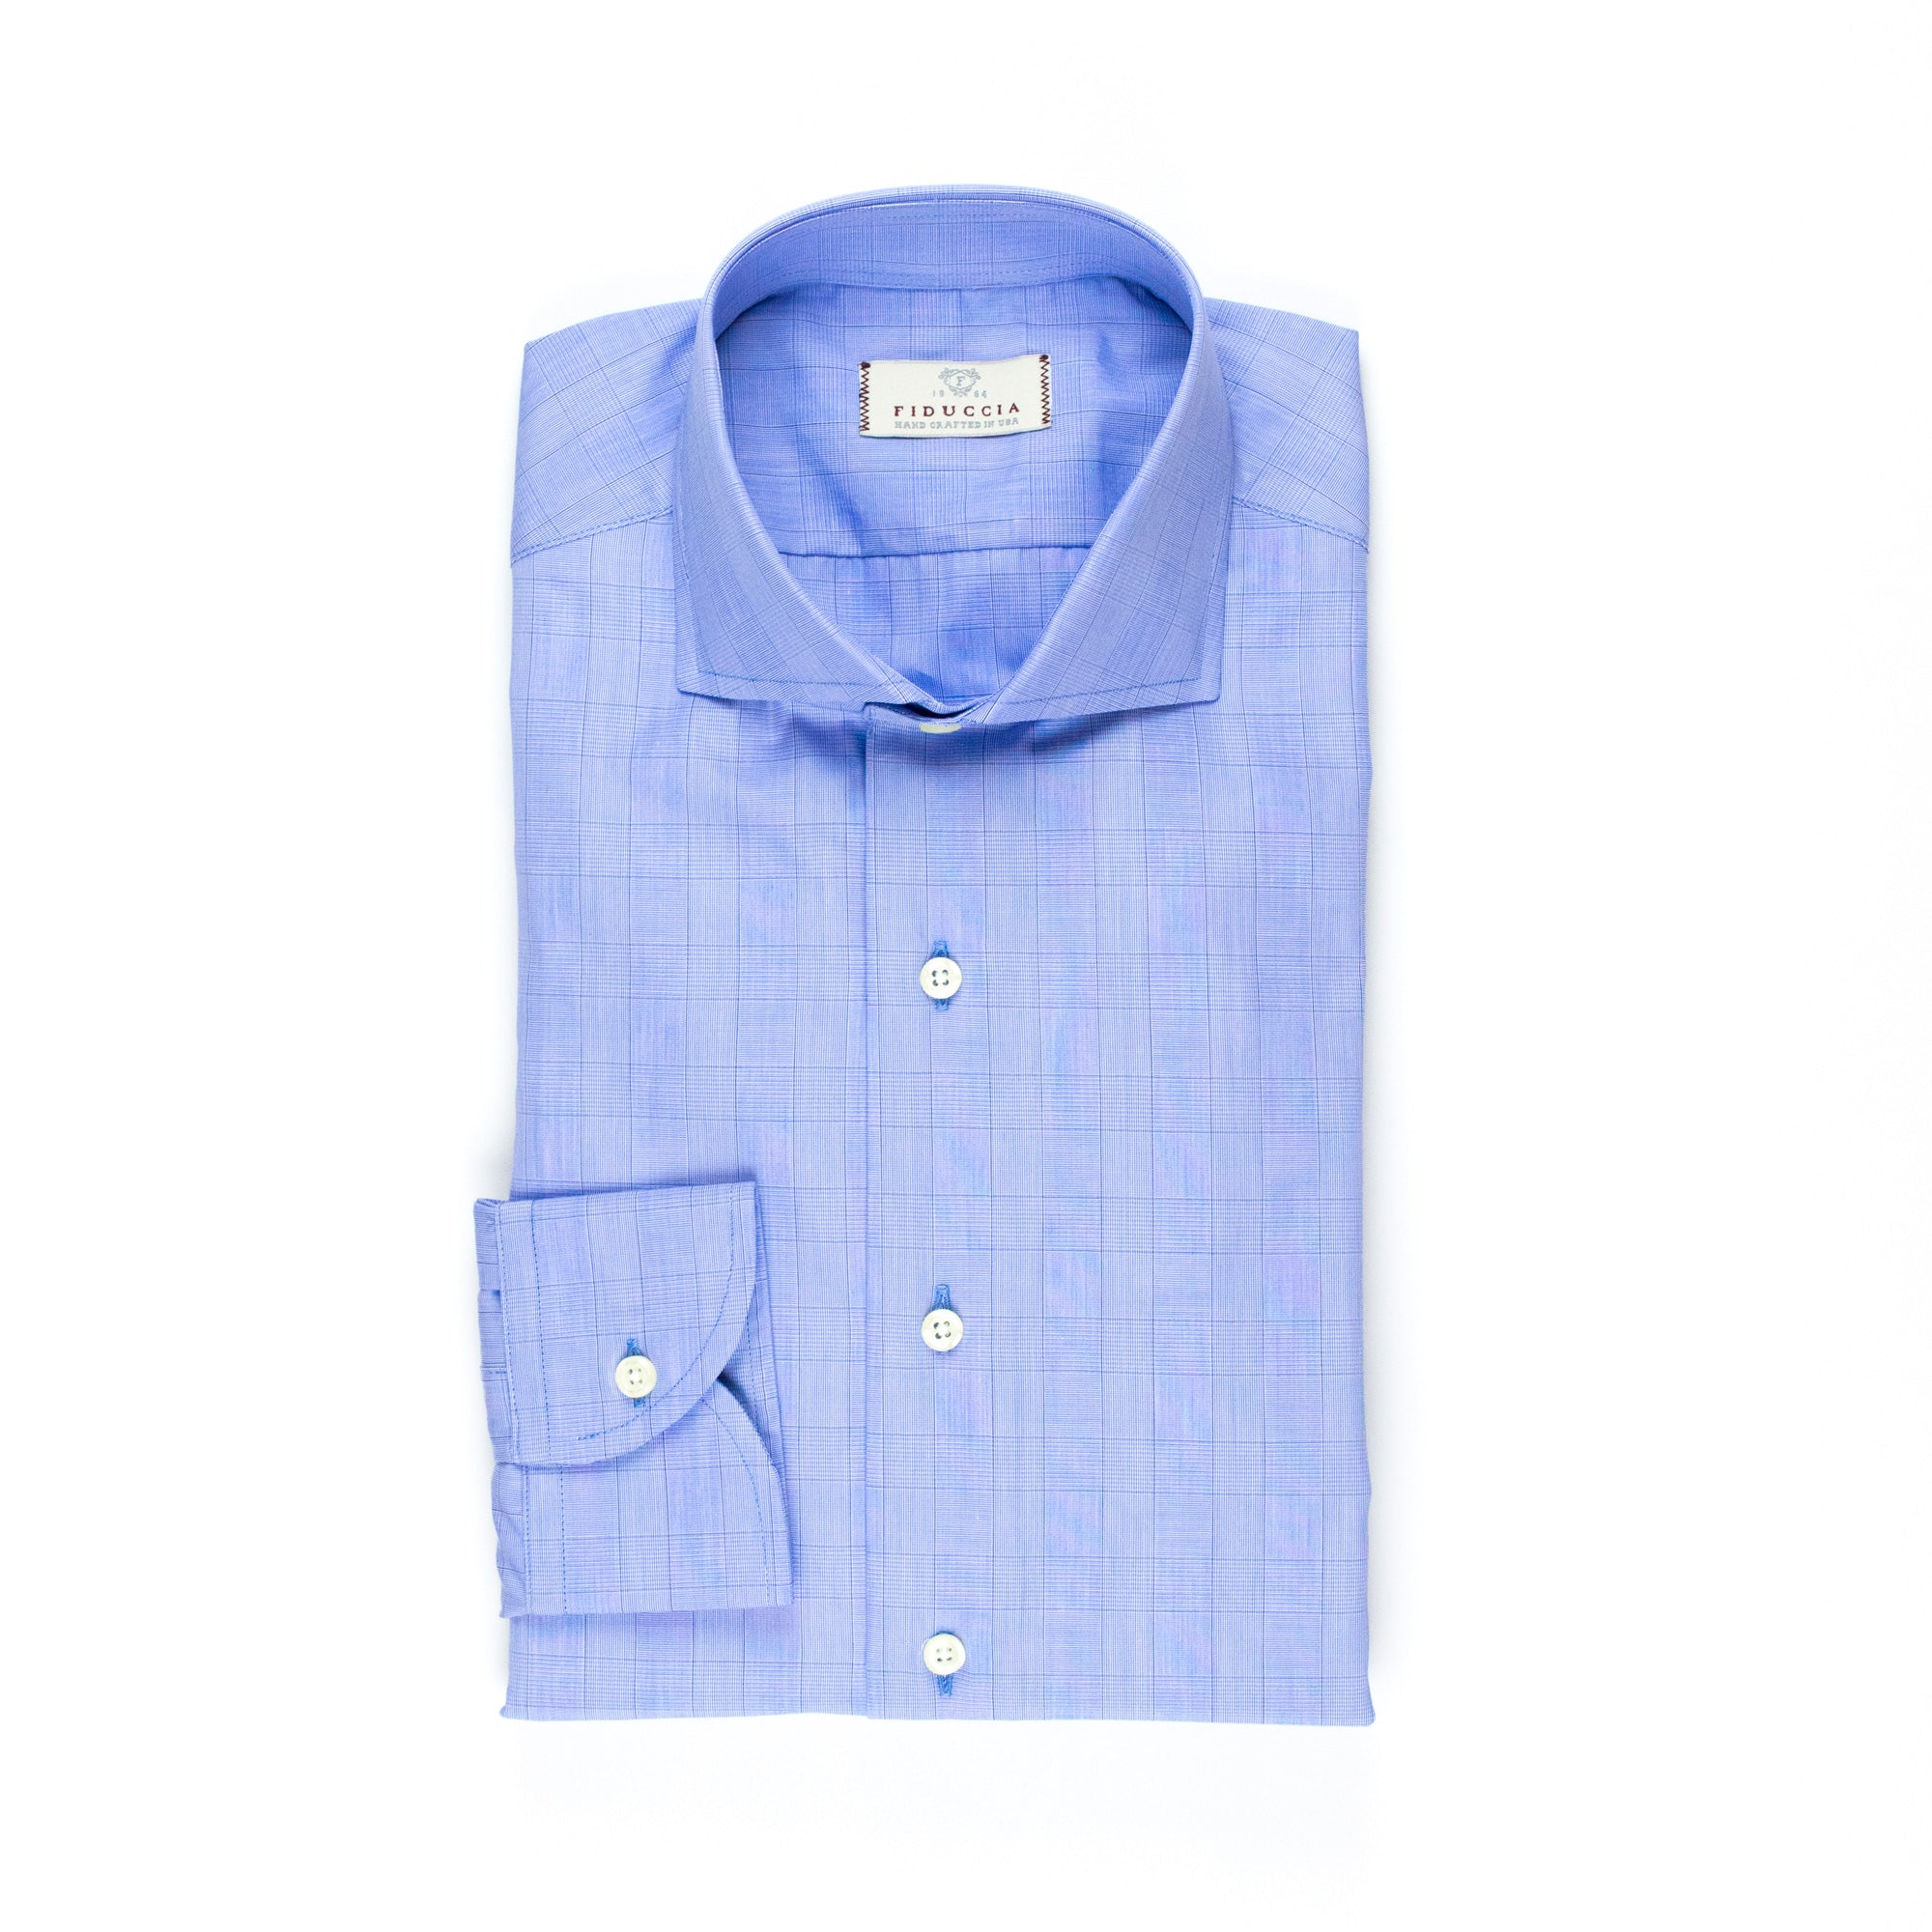 THE FRANKLIN Dress Shirt